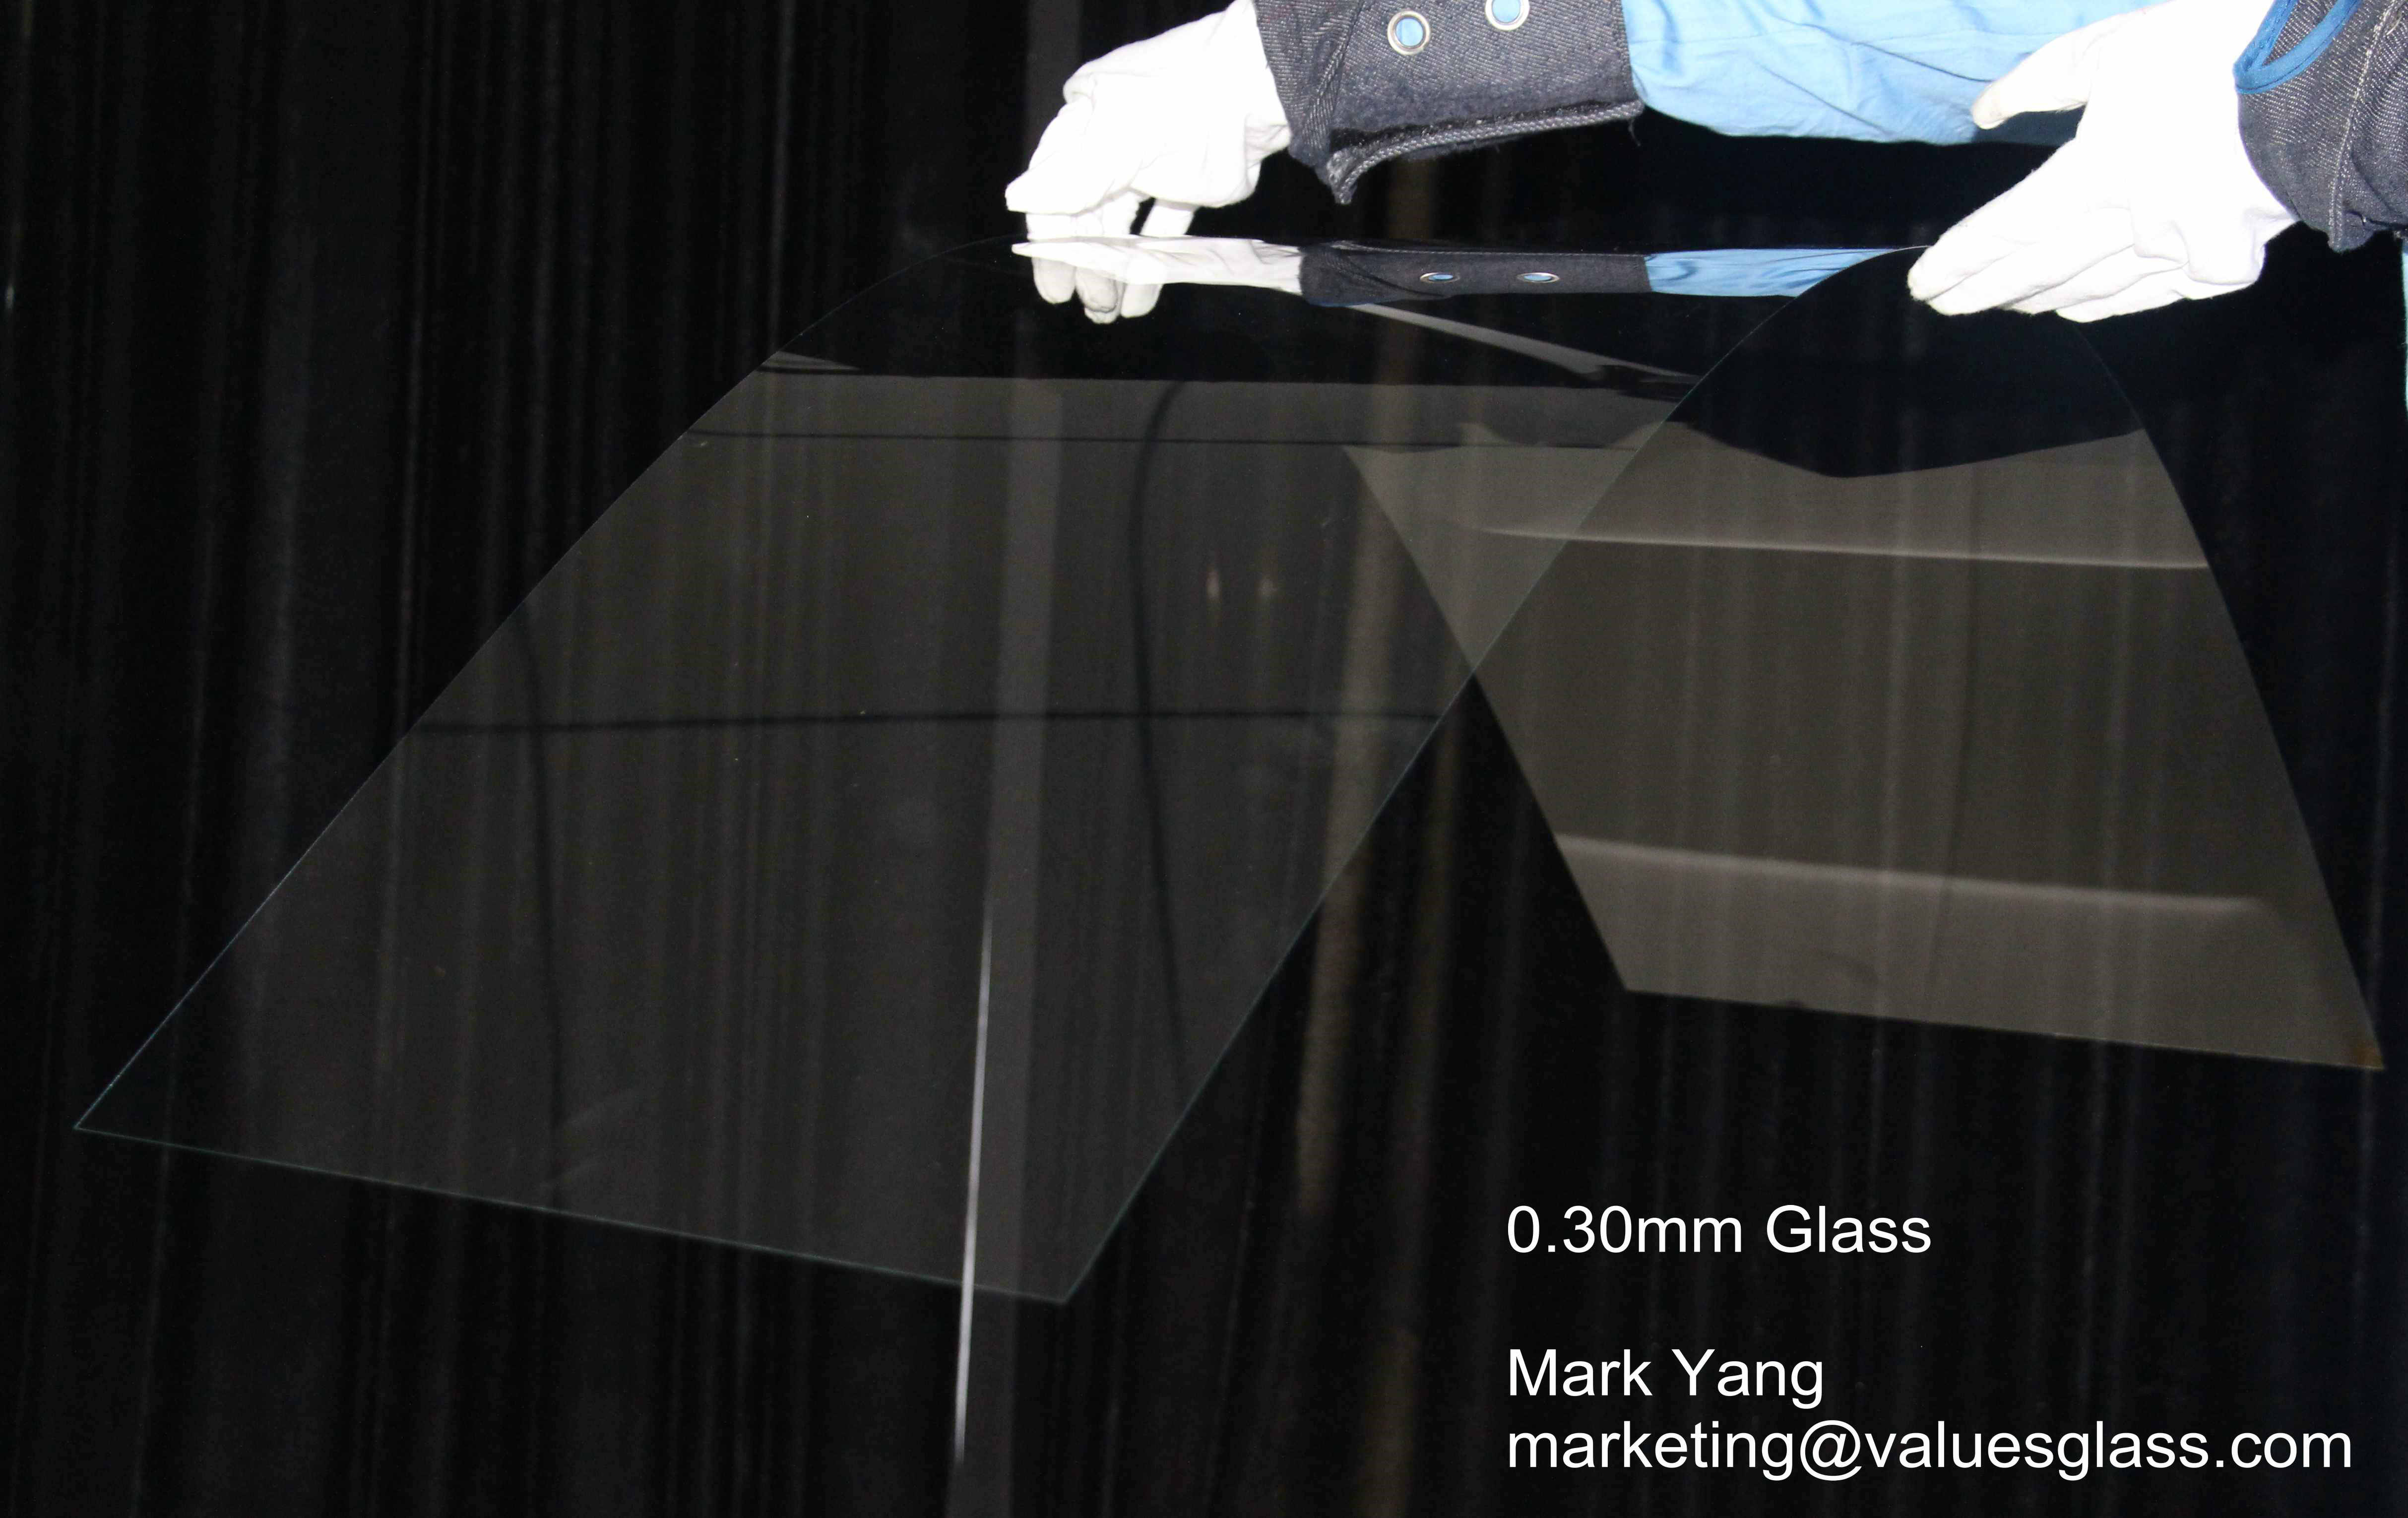 Ultra Thin Glass of 0.30mm